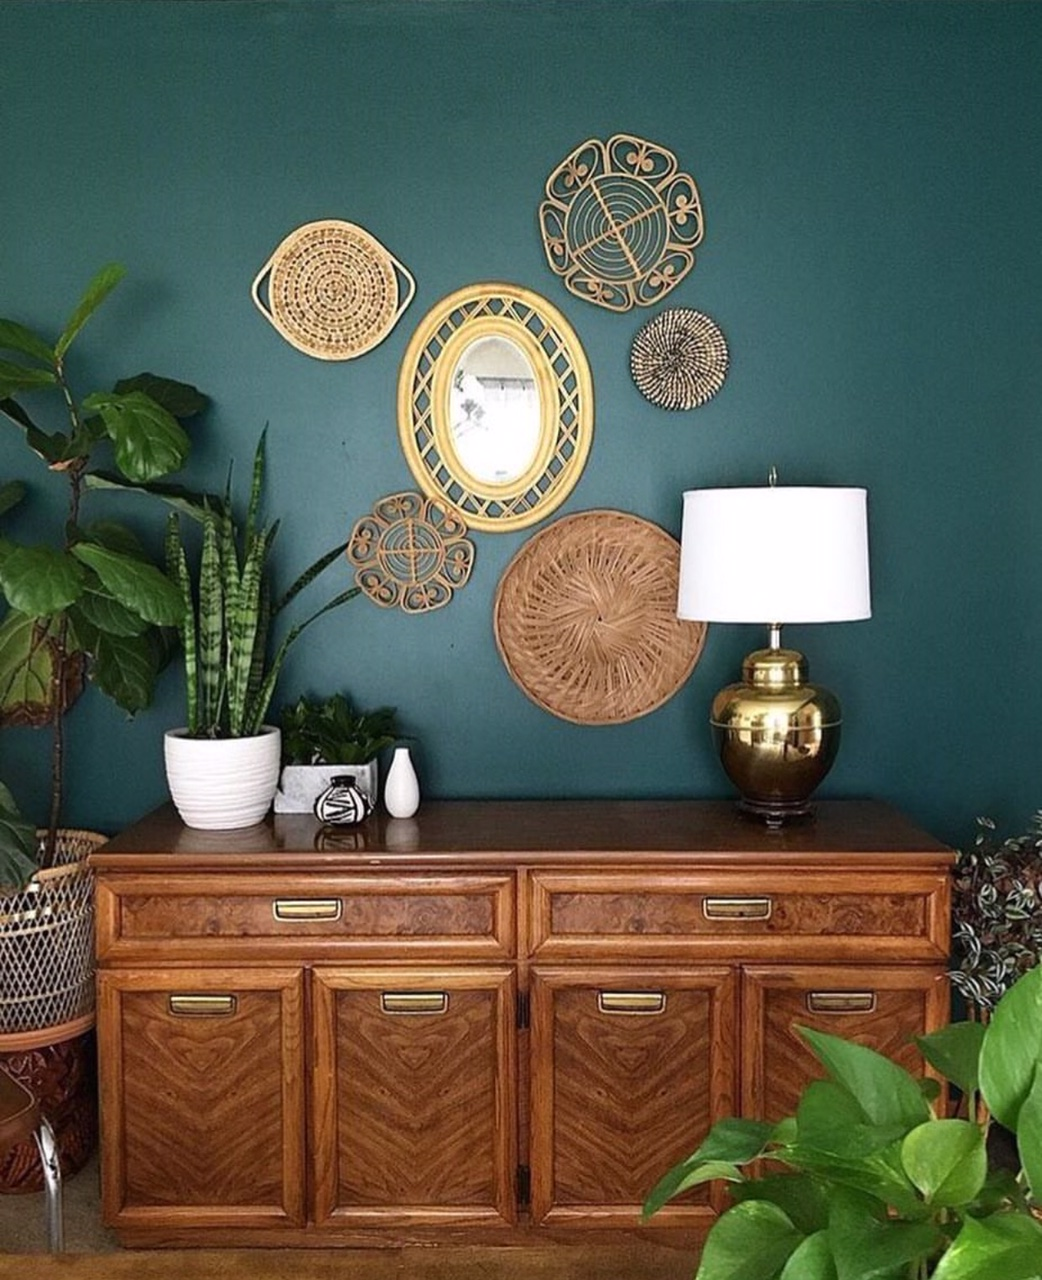 The most beautiful green and mid century furniture with wicker accessories -  @susiebrown